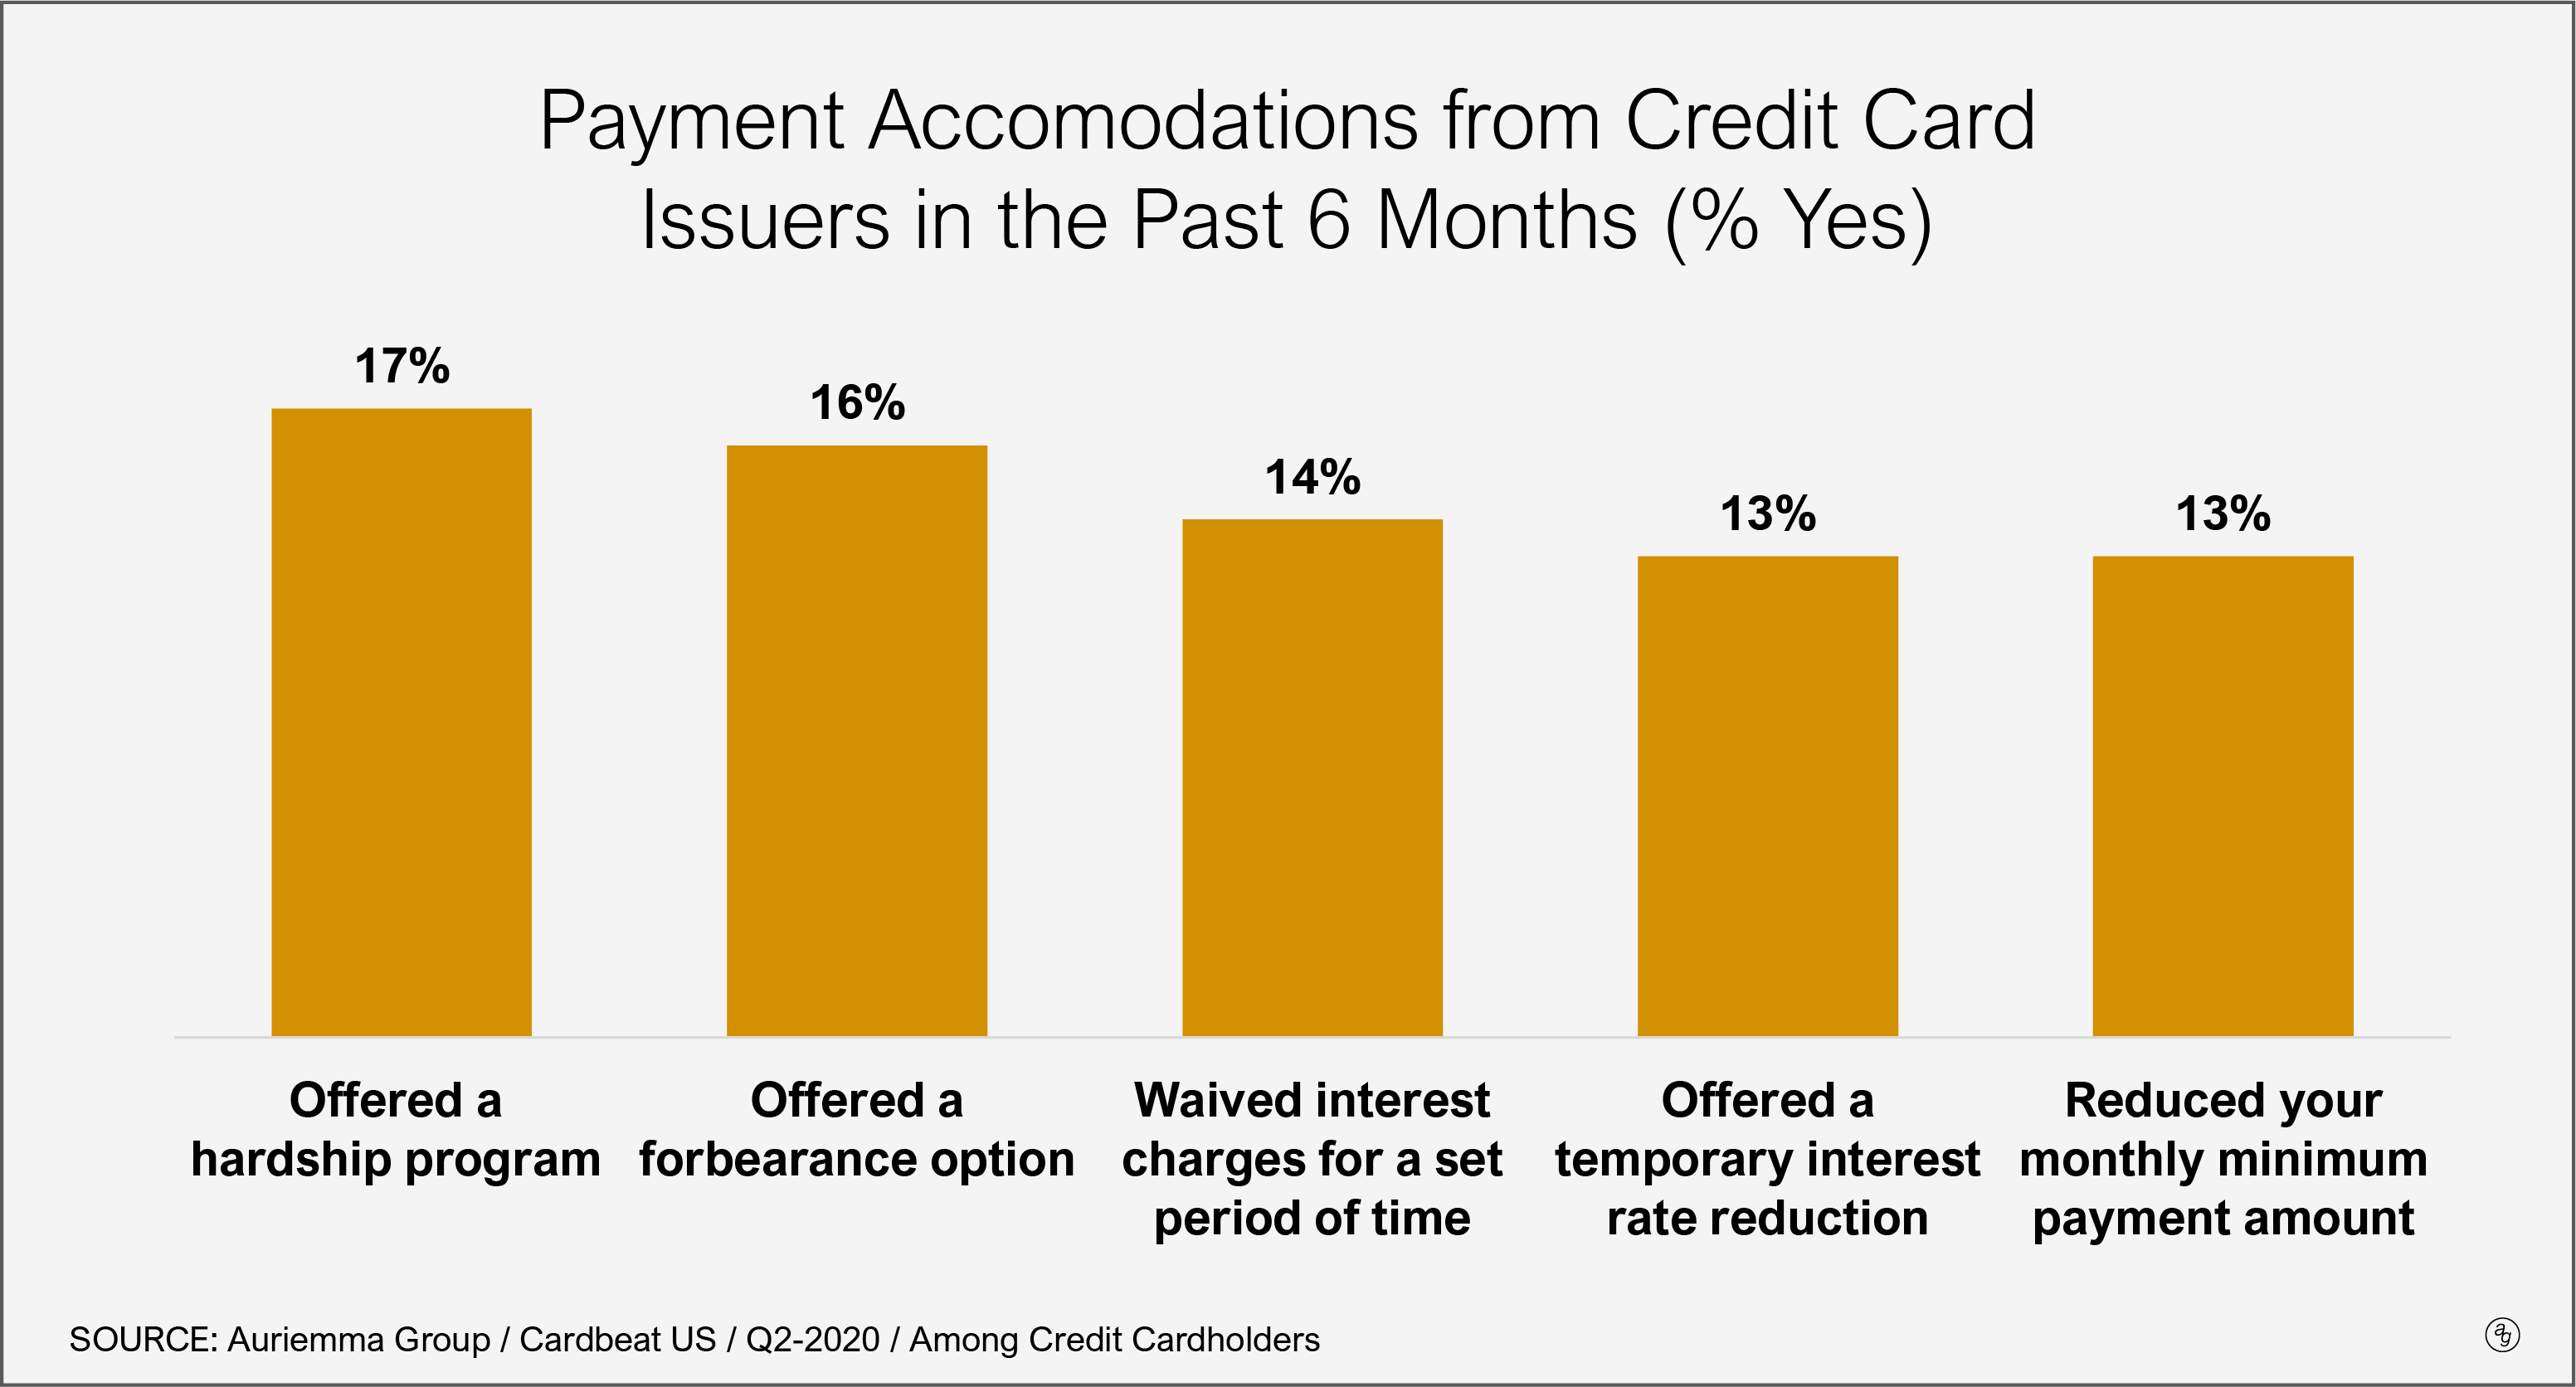 Cardholders Respond Positively to Payment Accommodation Offers